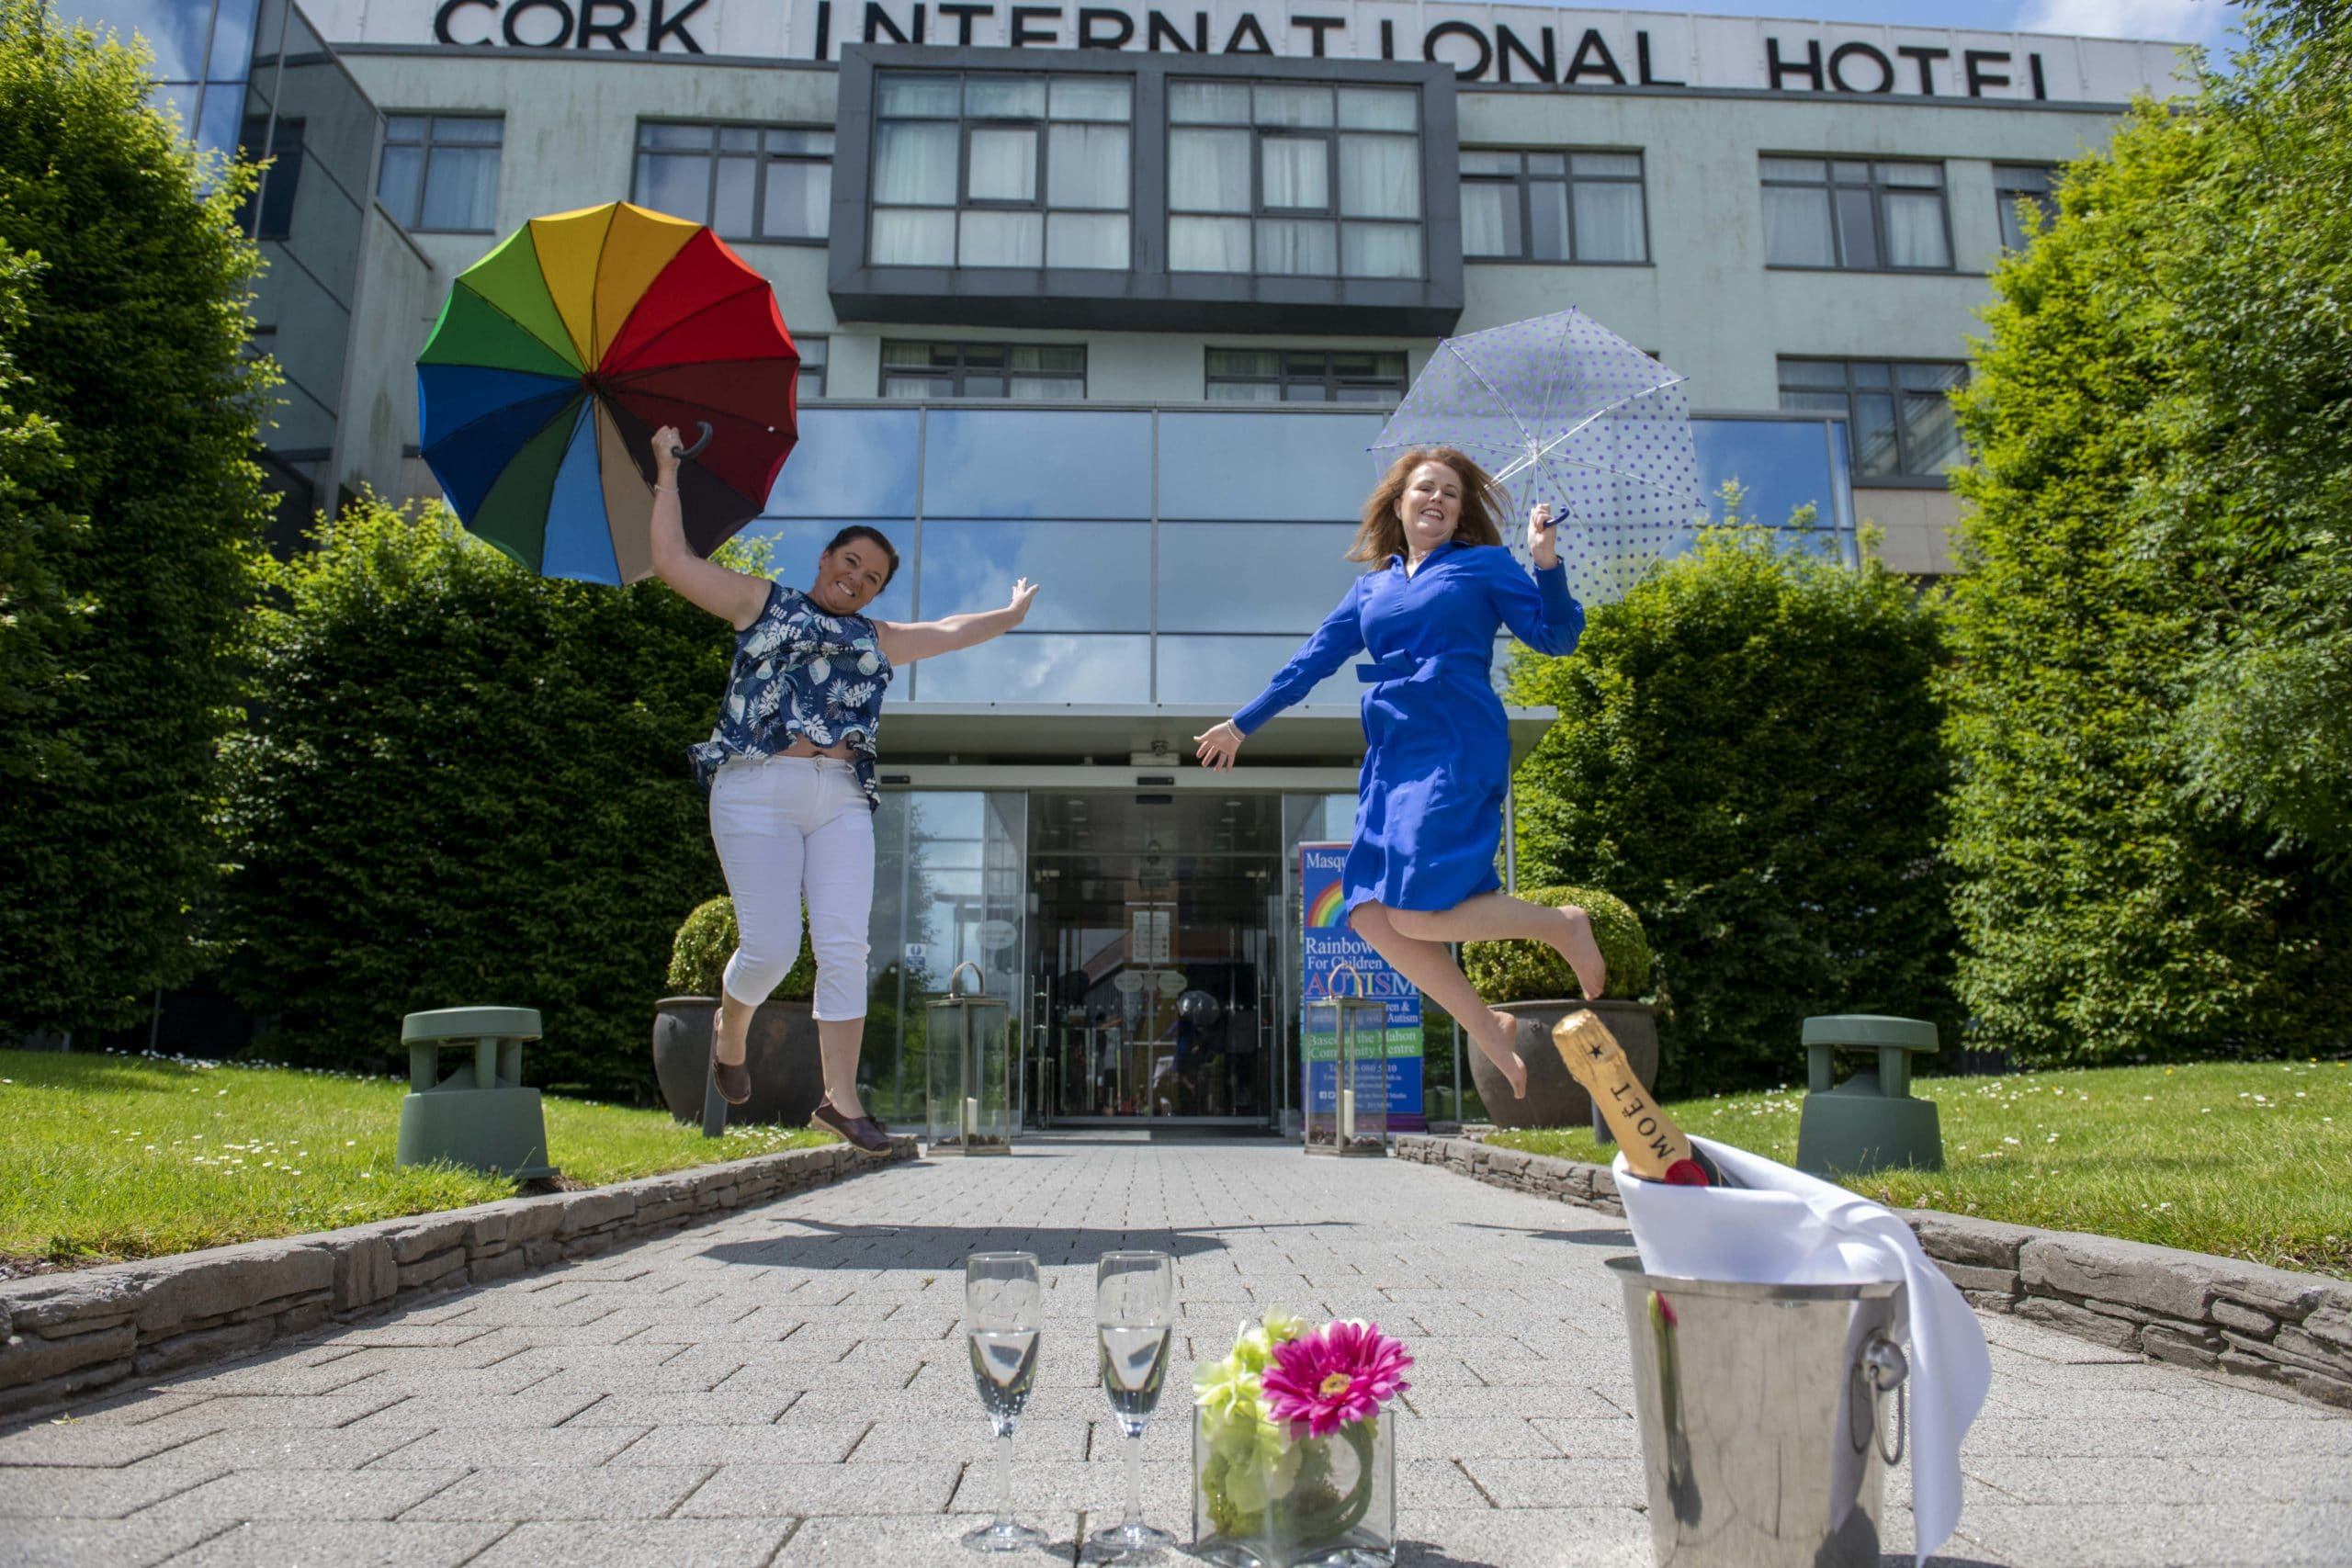 Cork International Hotel is giving away their hotel to raise €100,000 for charity